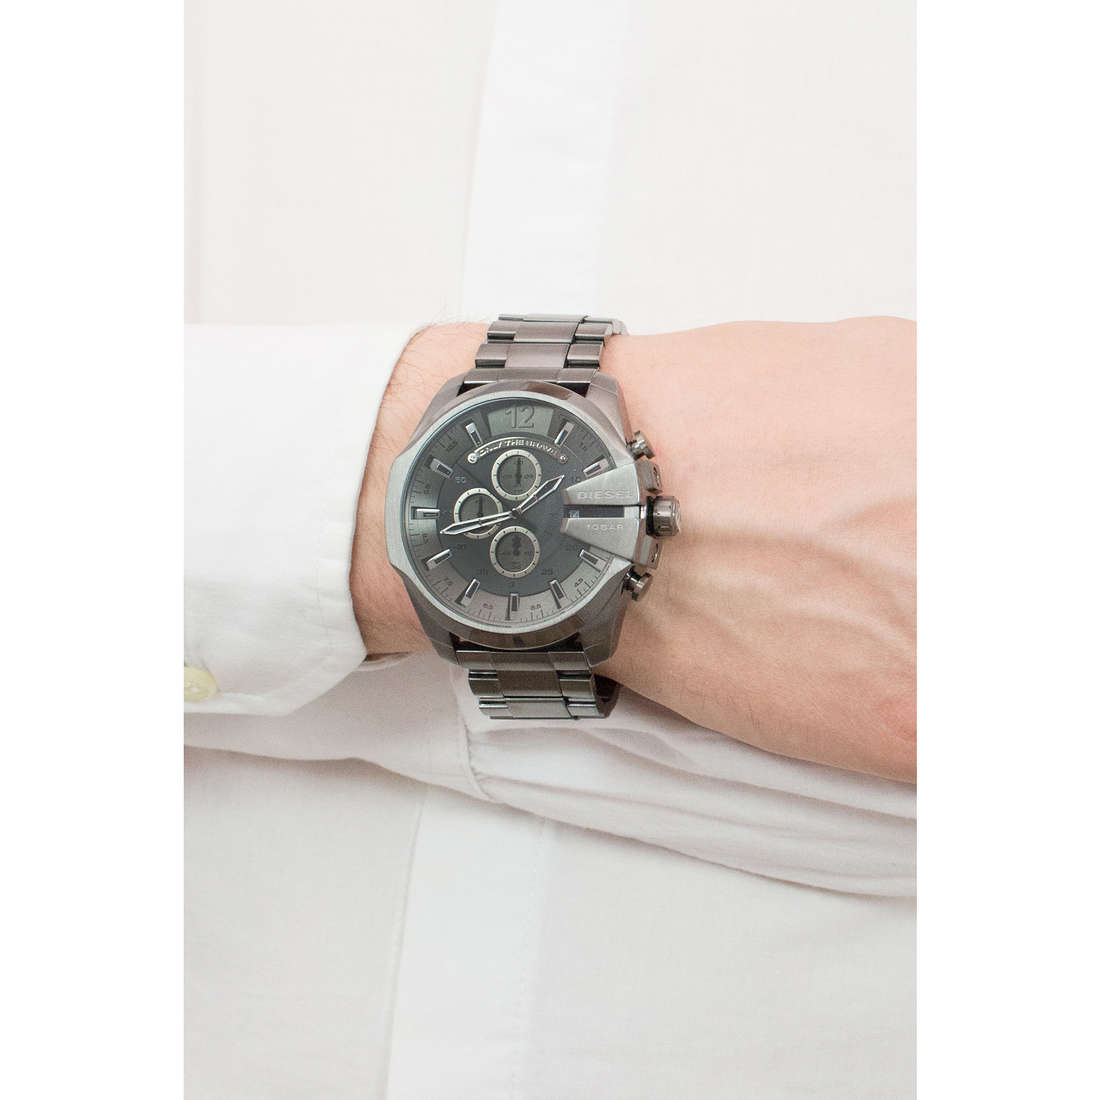 Diesel chronographes Mega Chief homme DZ4282 photo wearing